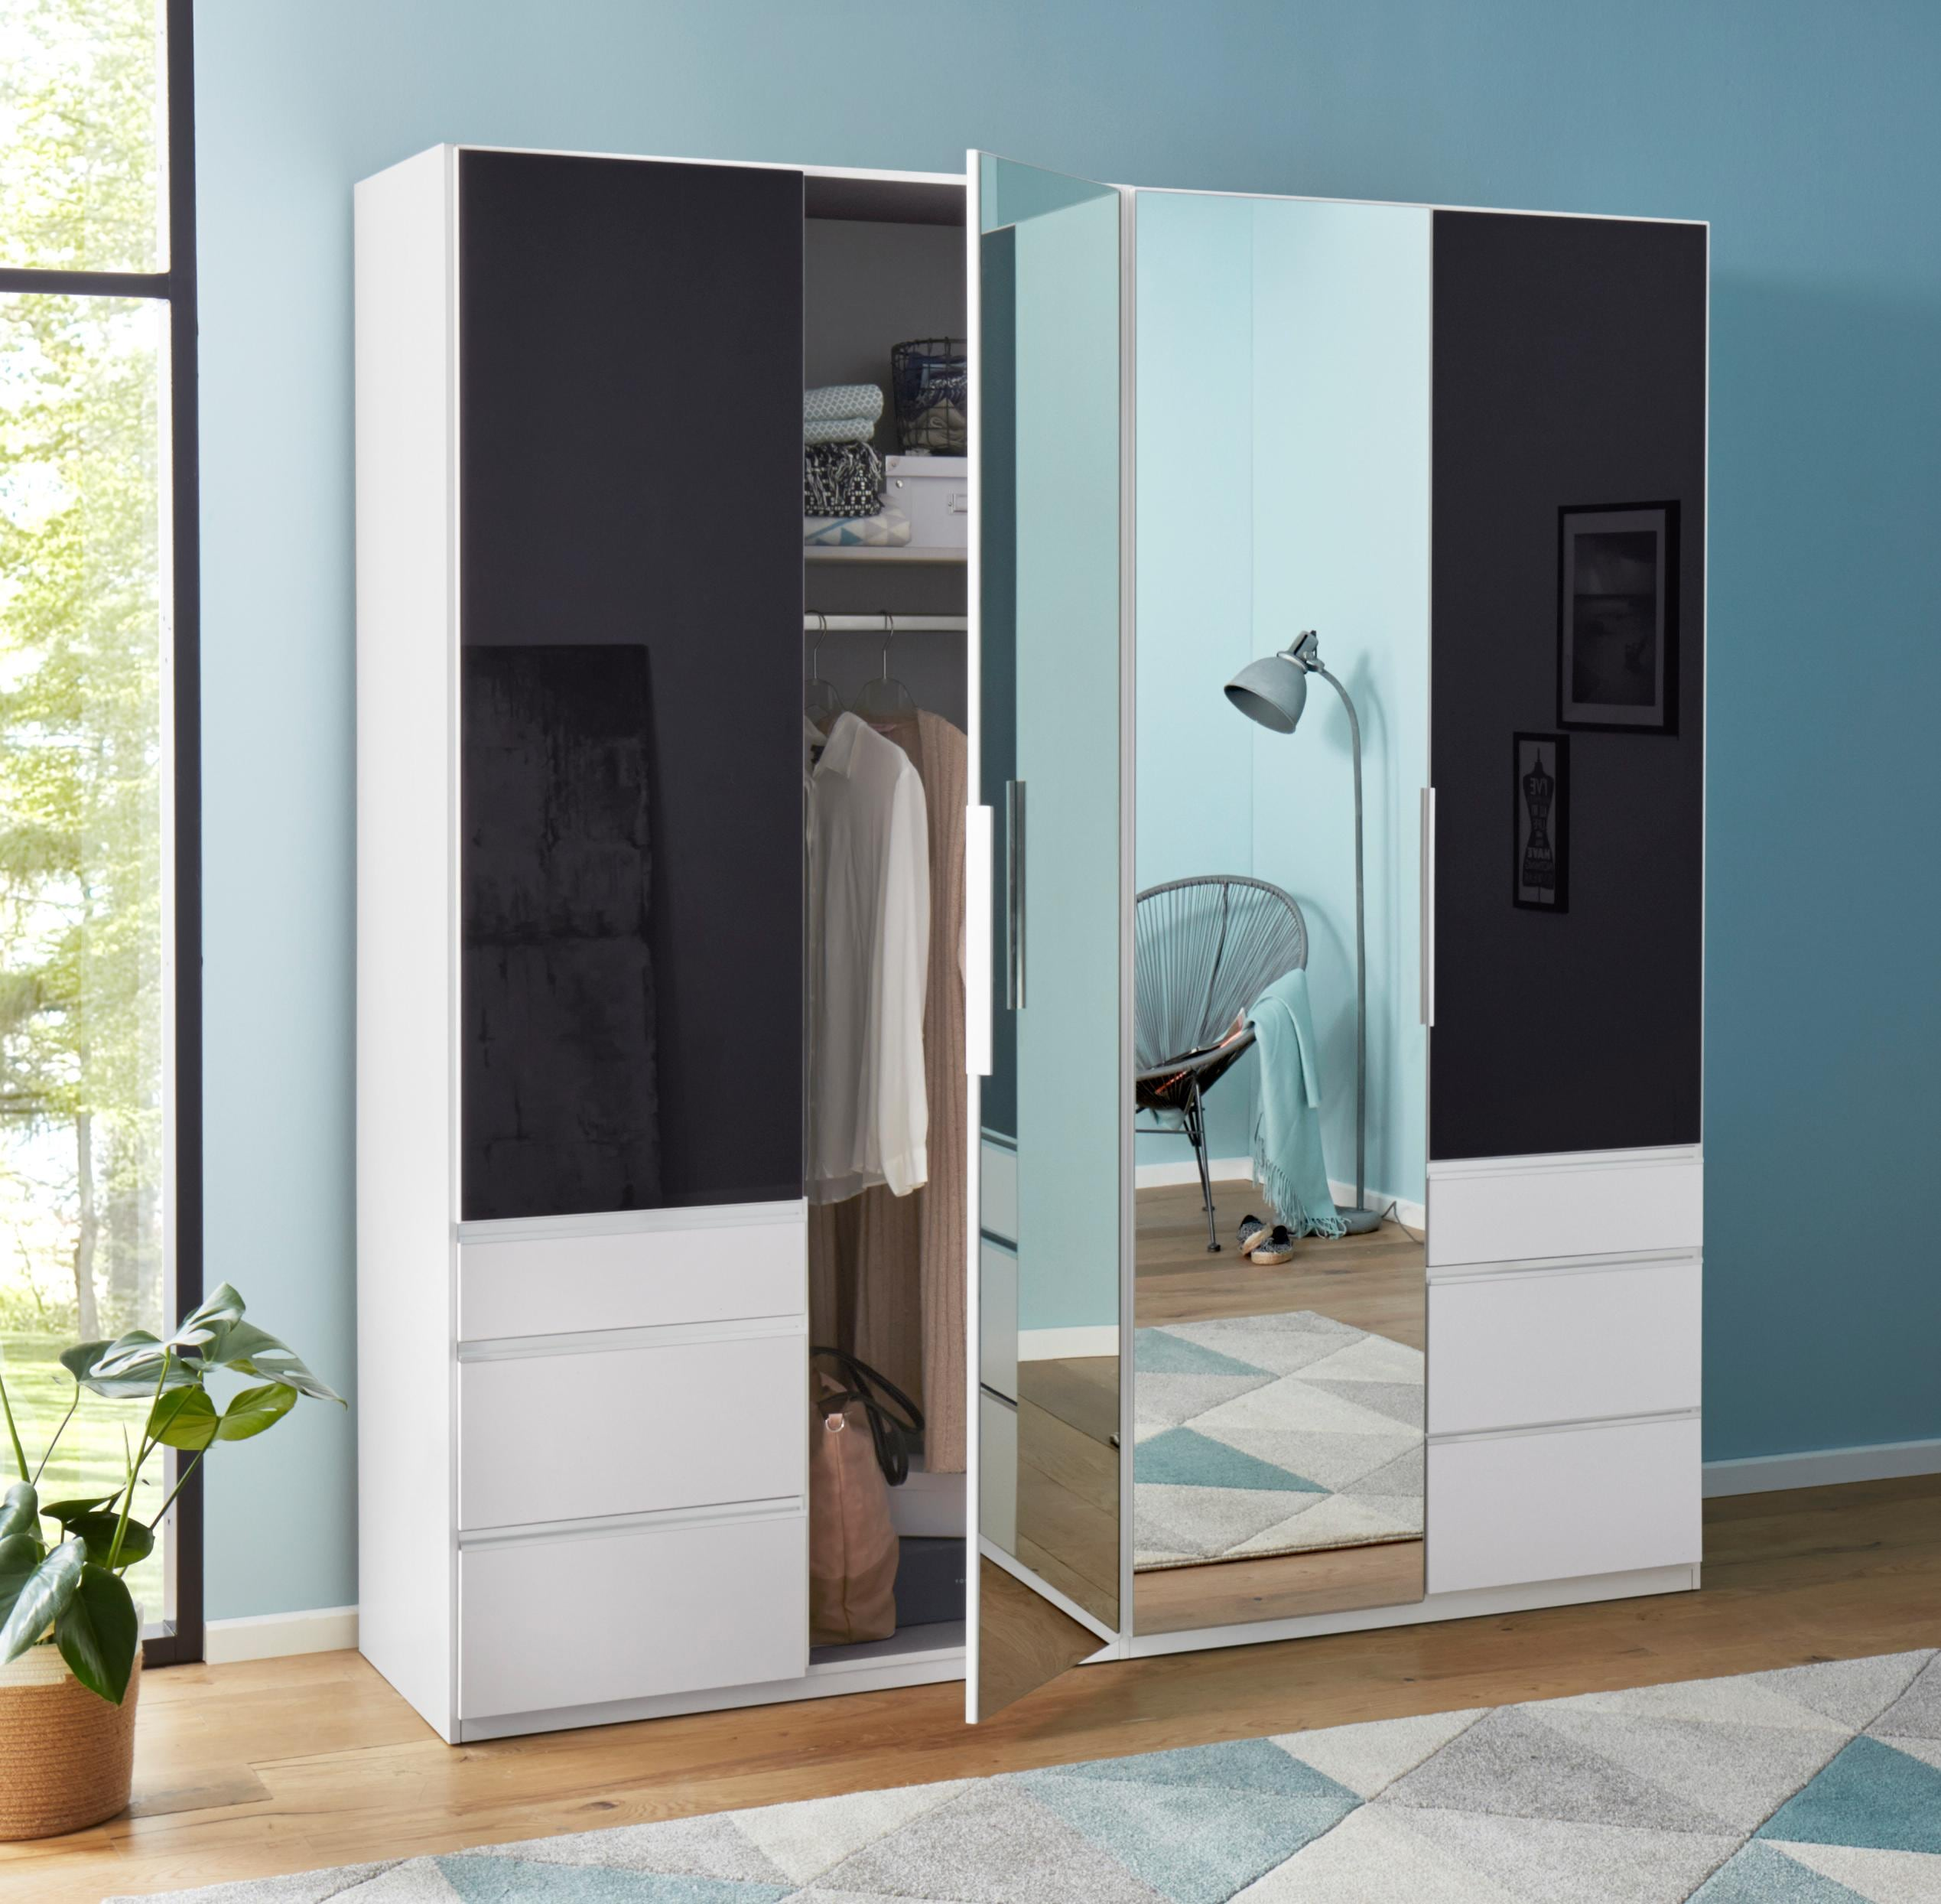 braun leinen dreht renschr nke online kaufen m bel. Black Bedroom Furniture Sets. Home Design Ideas